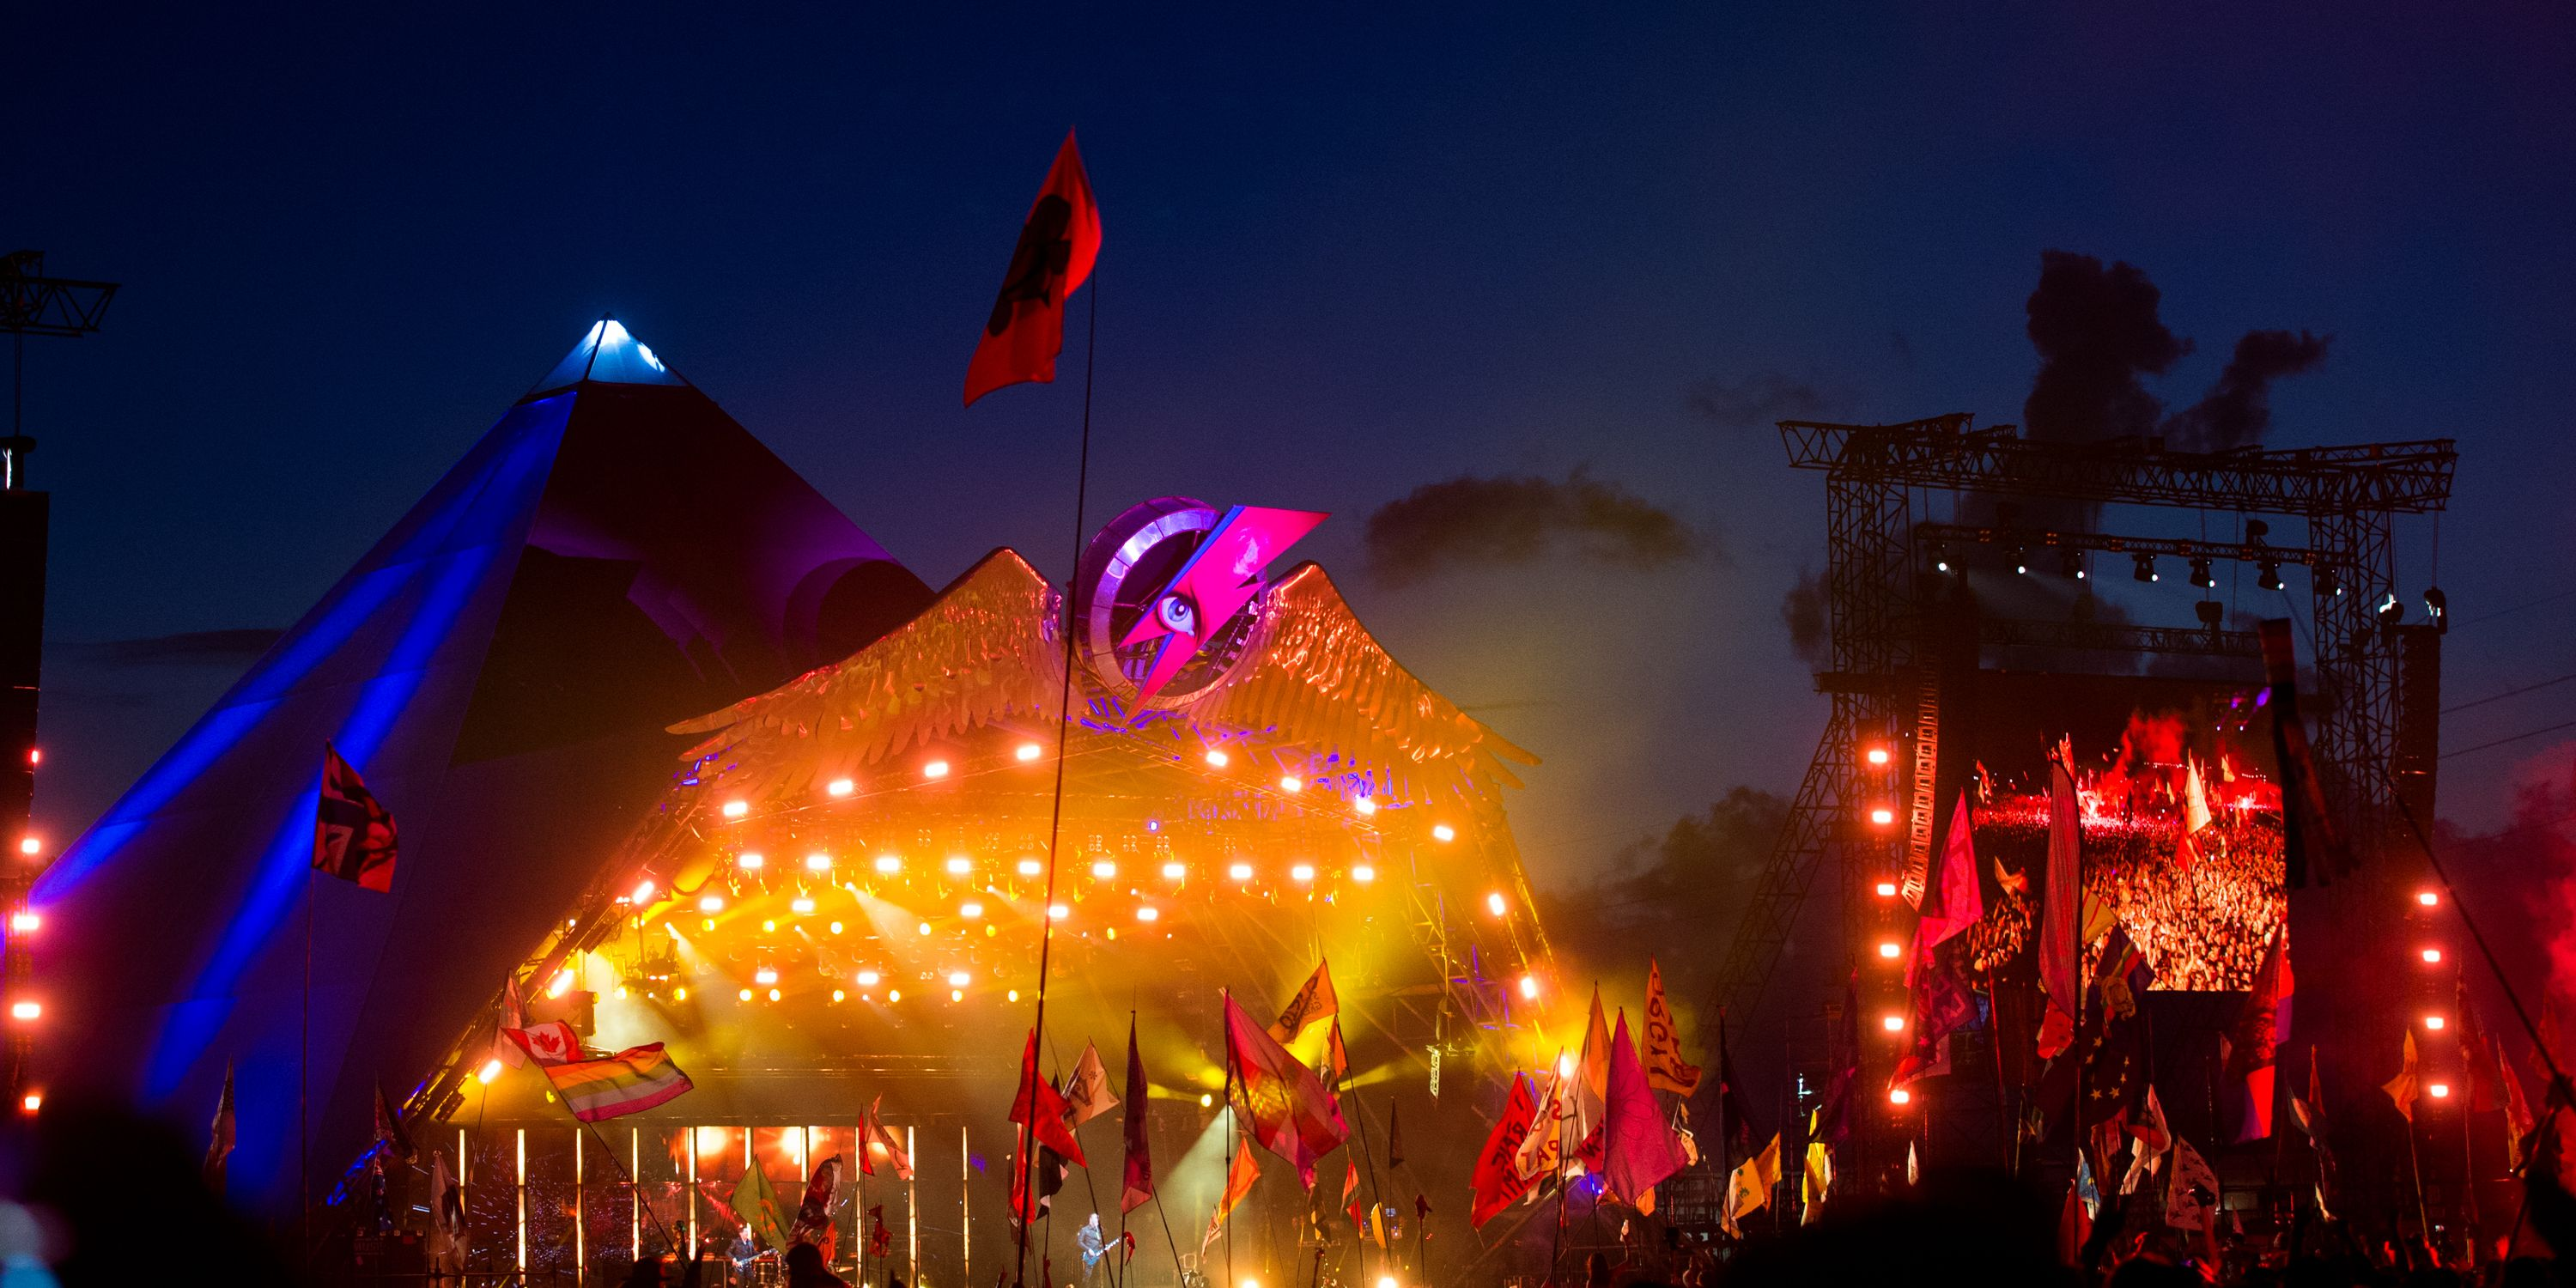 GLASTONBURY, ENGLAND - JUNE 24: A general view of the Pyramid Stage as Muse perform at Glastonbury Festival 2016 at Worthy Farm, Pilton on June 24, 2016 in Glastonbury, England.